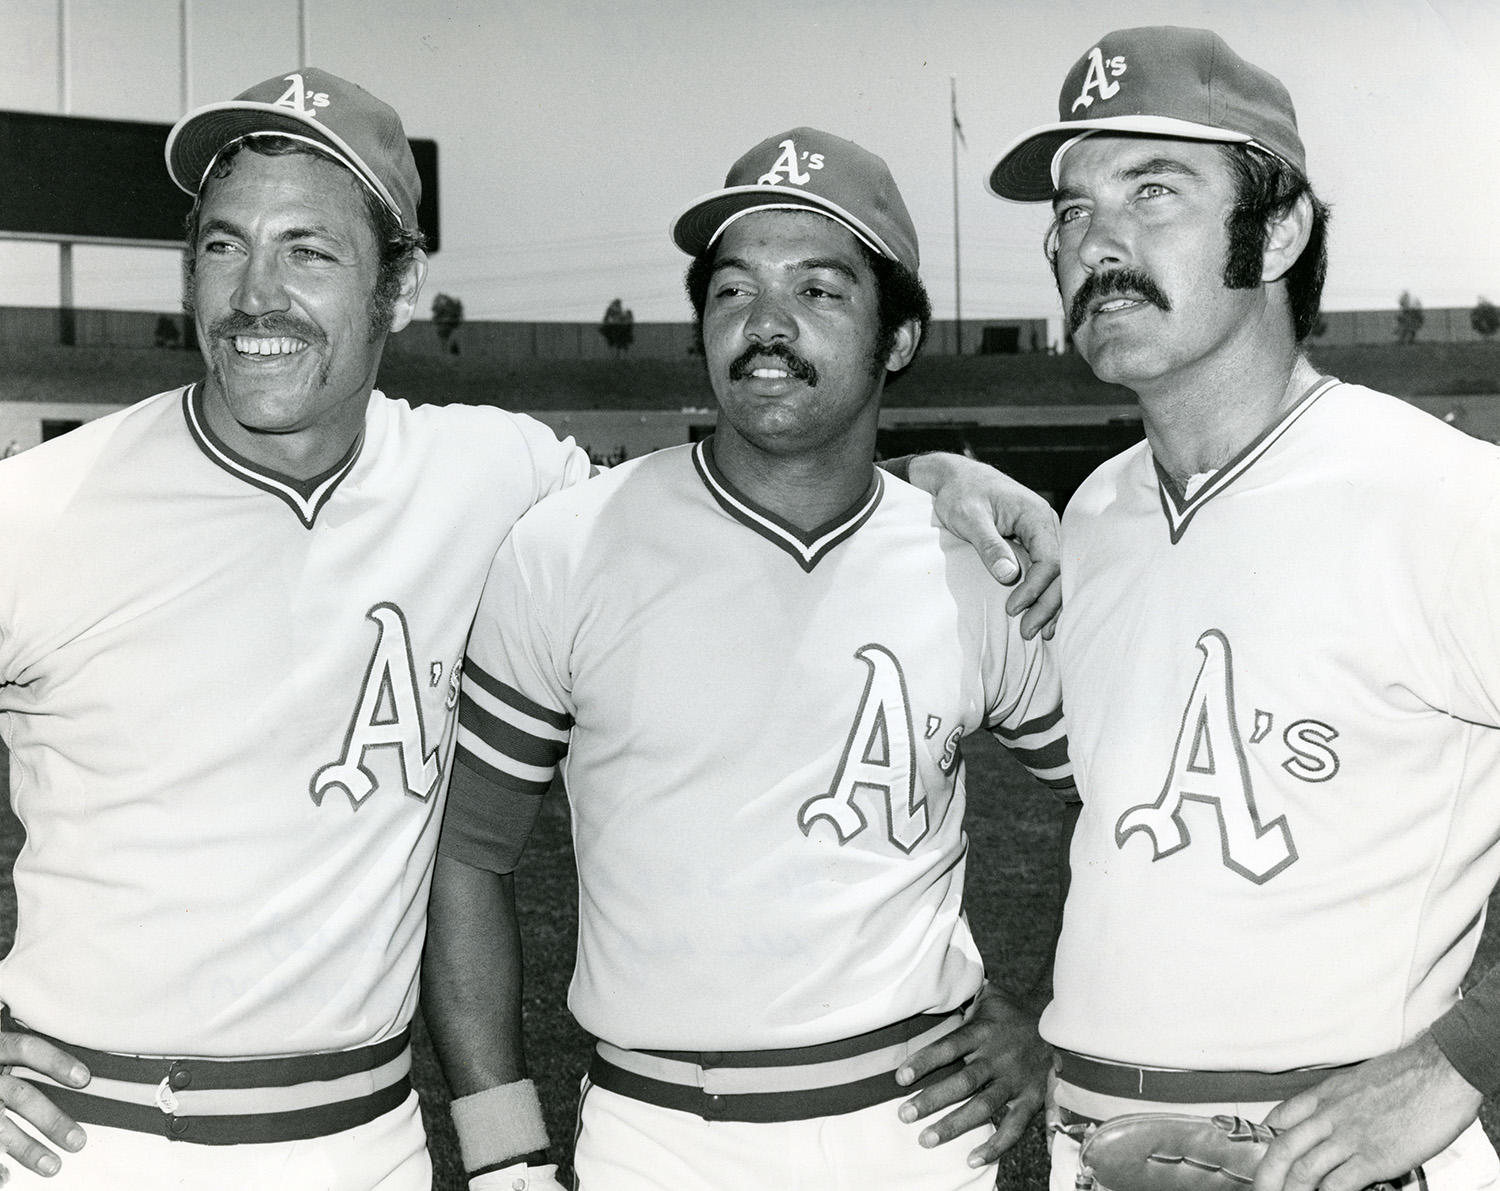 """The 1972 Oakland A's were known throughout baseball as the """"Mustache Gang"""" after the team started sporting facial hair once Reggie Jackson (center) showed up to Spring Training with a mustache. Pictured to the left of Jackson is Mike Epstein and on the right is Darold Knowles. (National Baseball Hall of Fame and Museum)"""